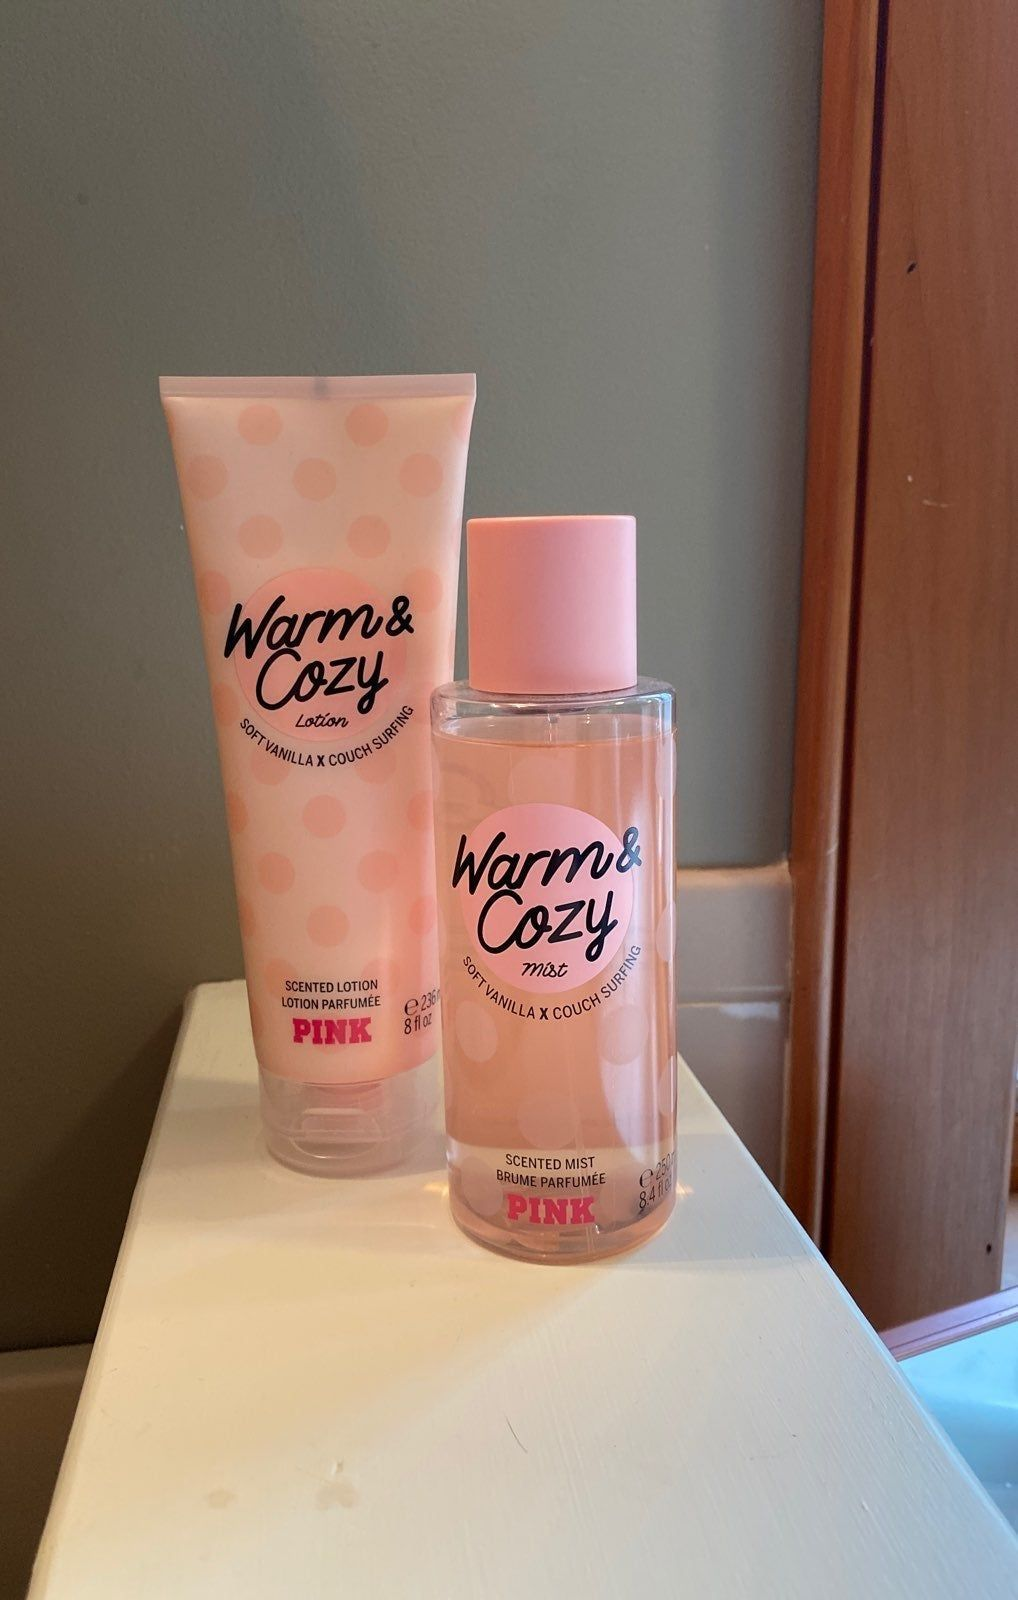 Warm And Cozy Pink Perfume And Lotion Smells So Good Body Smells Pink Perfume Bath And Body Works Perfume